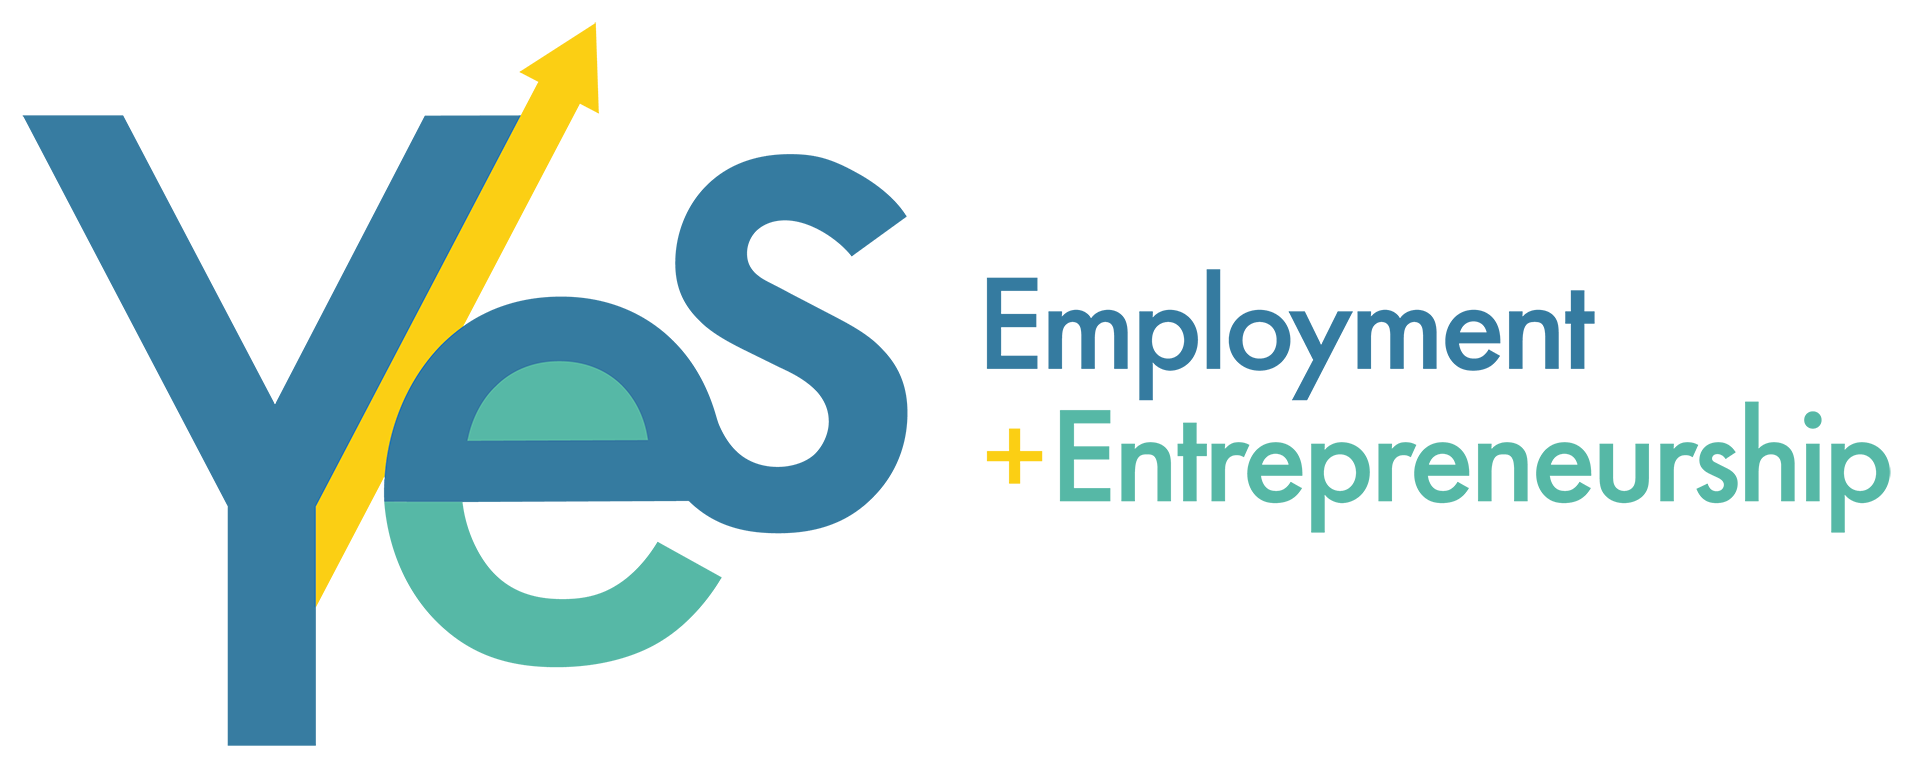 YES Employment + Entrepreneurship